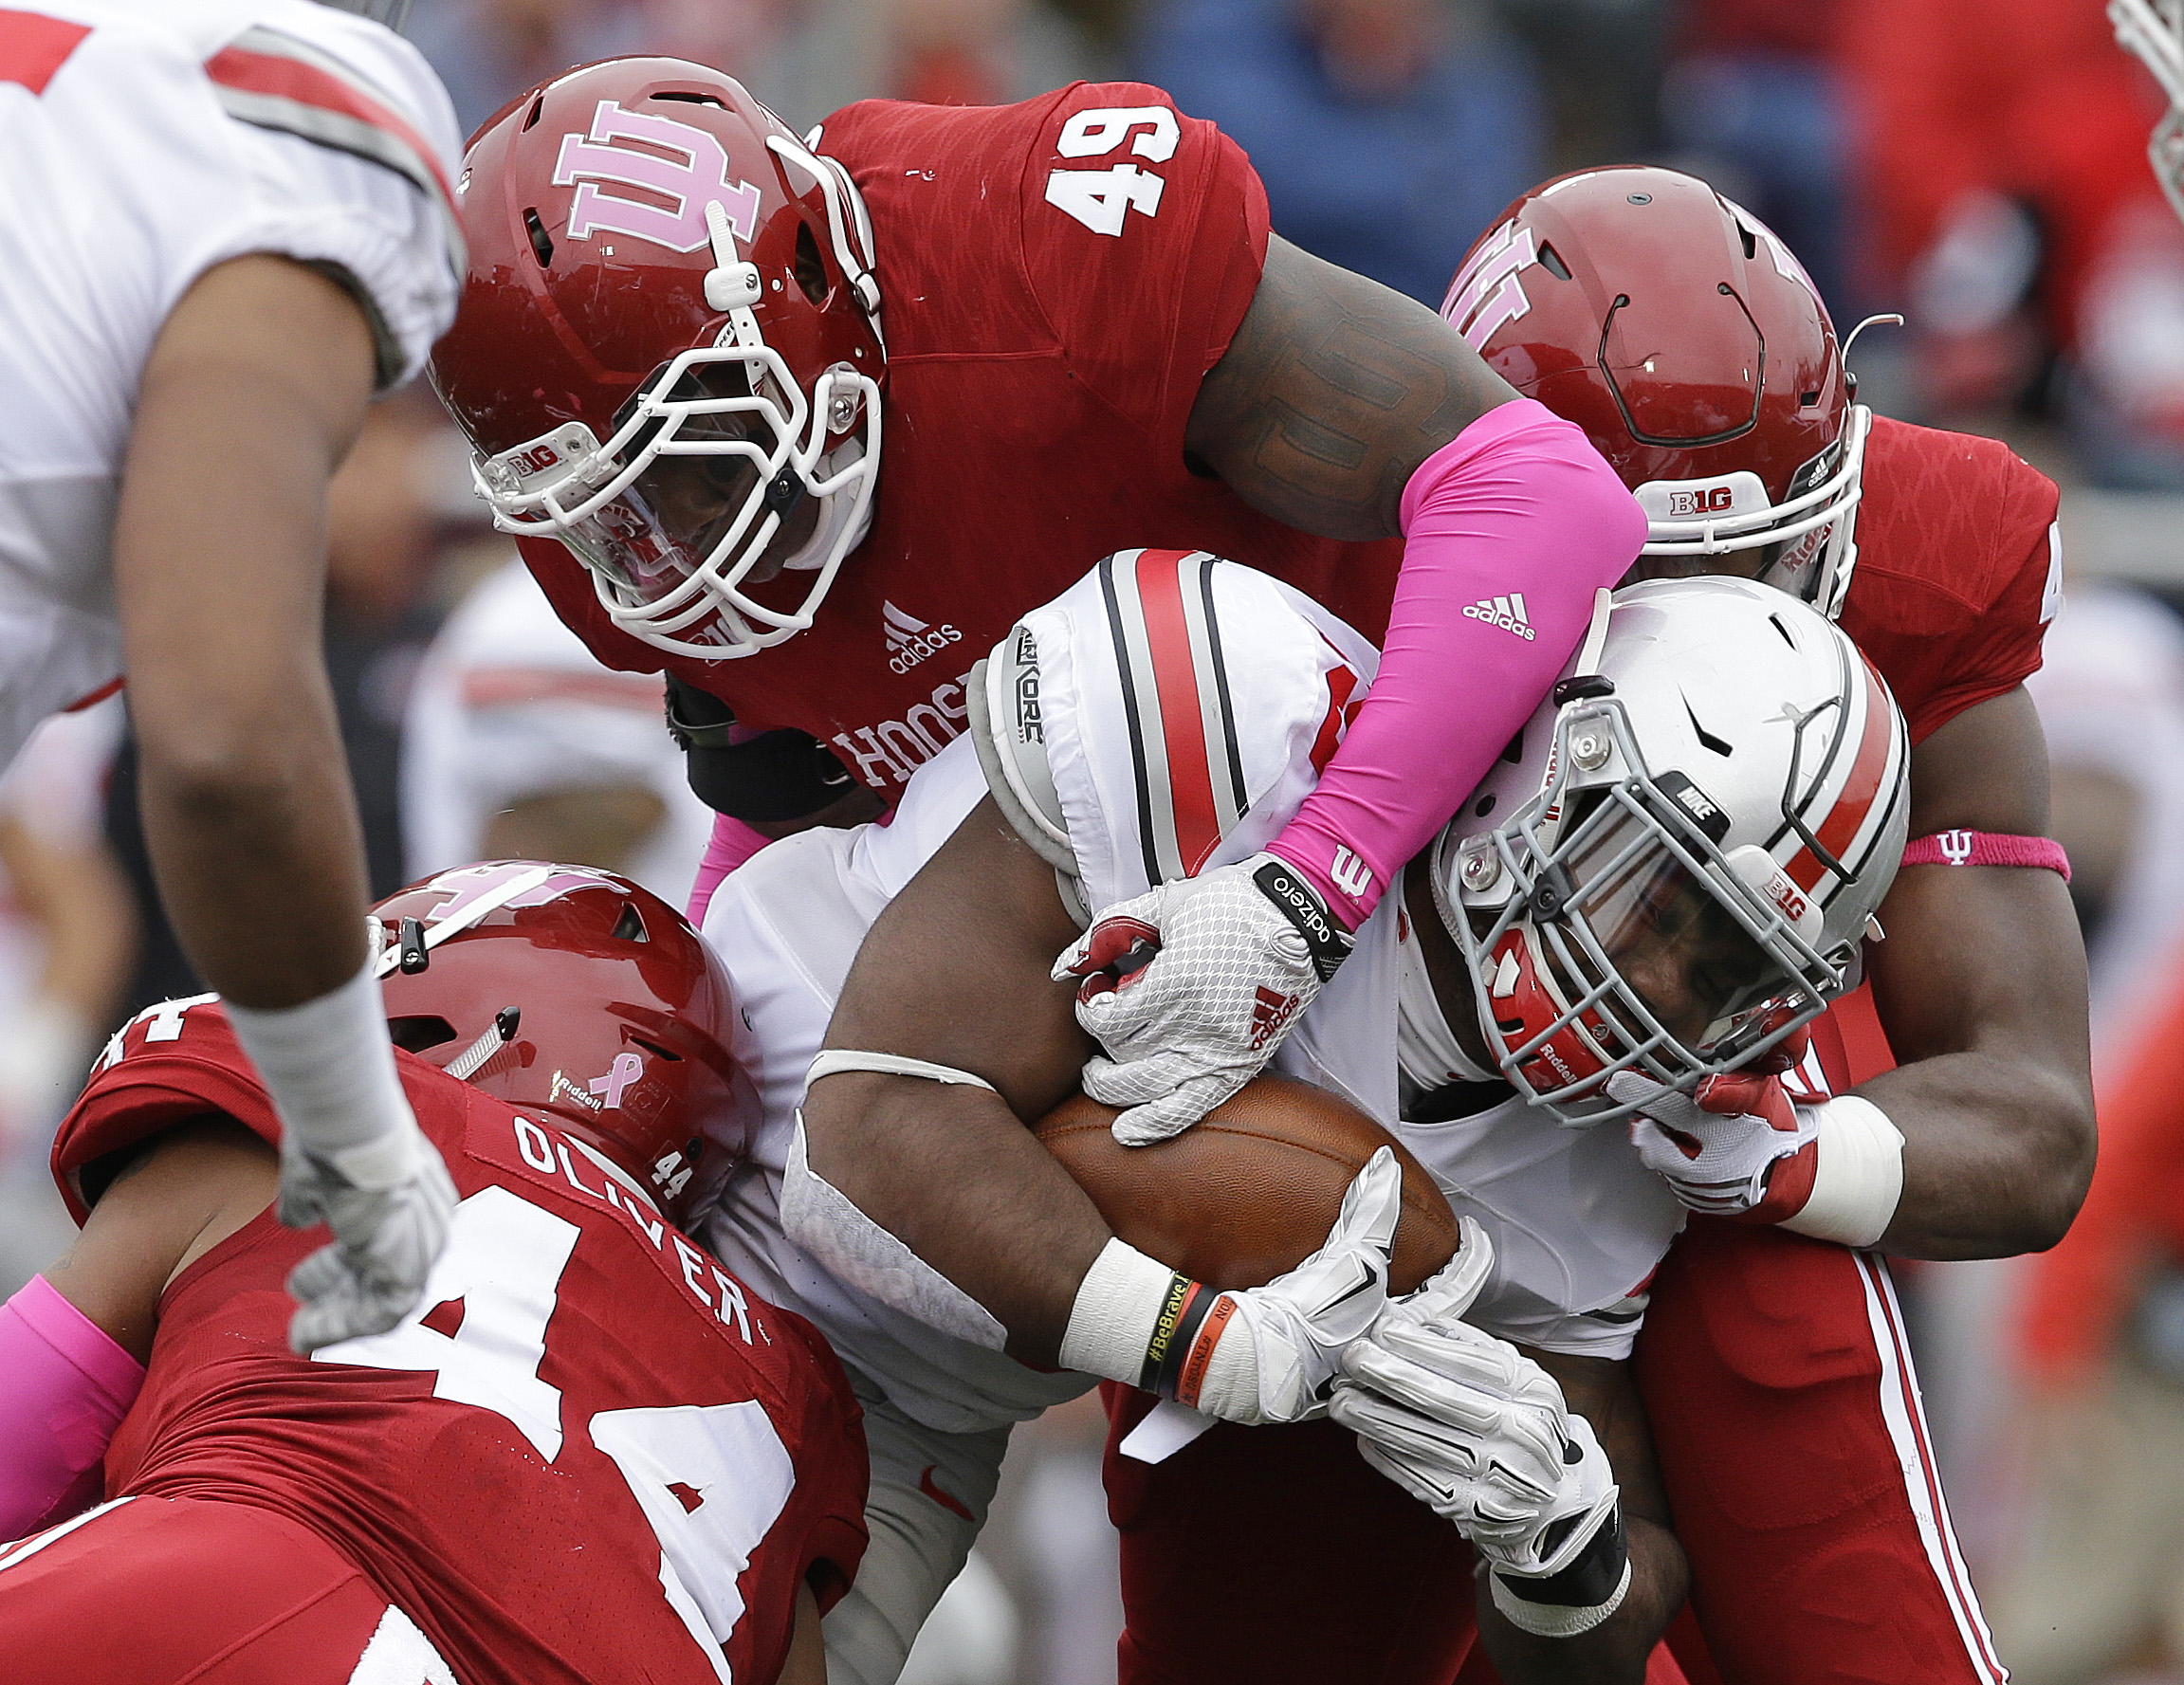 Ohio State's Ezekiel Elliott is tackled by Indiana's Marcus Oliver (44) and Greg Gooch (49) during the first half of an NCAA college football game Saturday, Oct. 3, 2015 in Bloomington, Ind. (AP Photo/Darron Cummings)